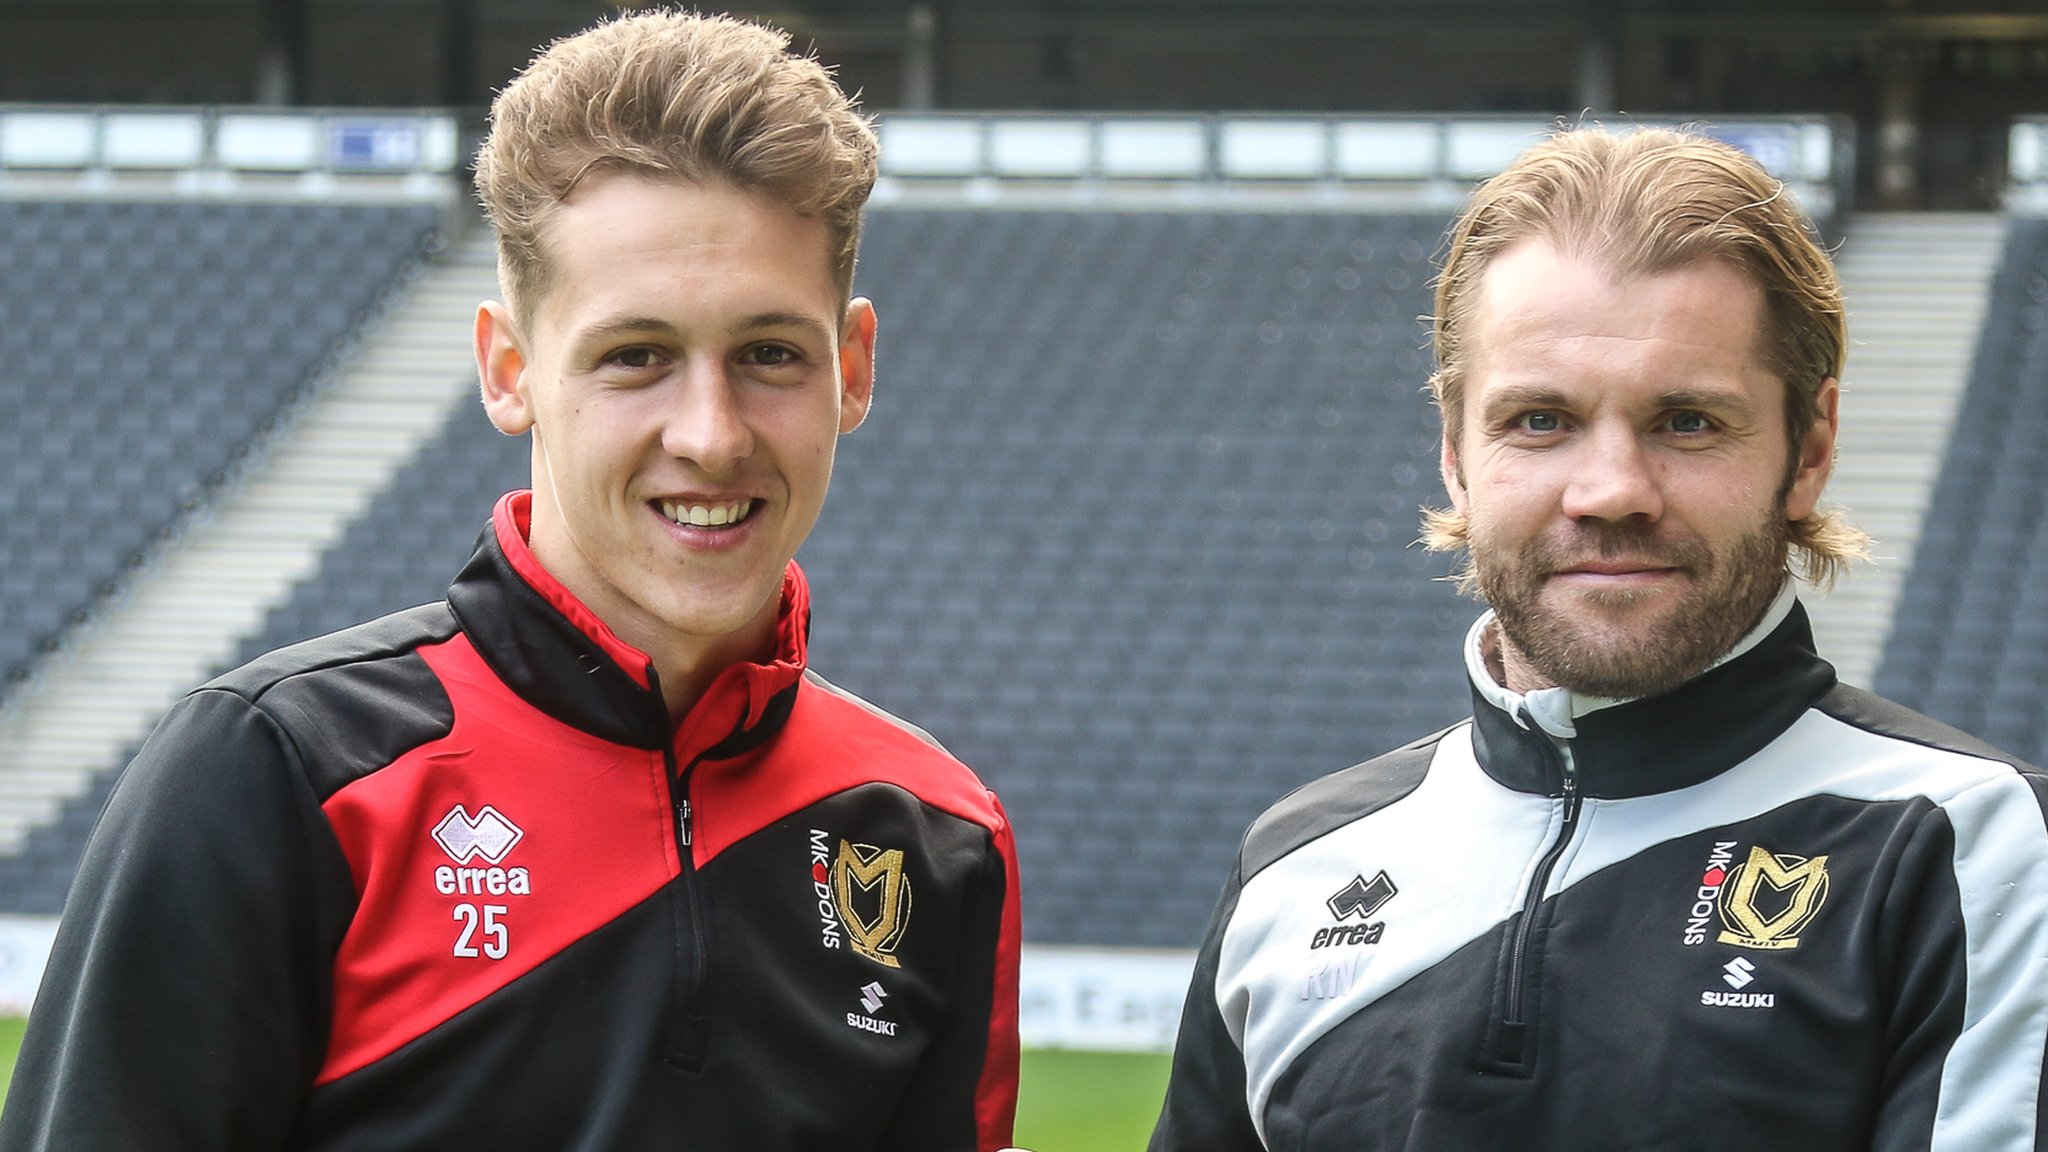 Callum Brittain: MK Dons defender named EFL Young Player of the Month for September